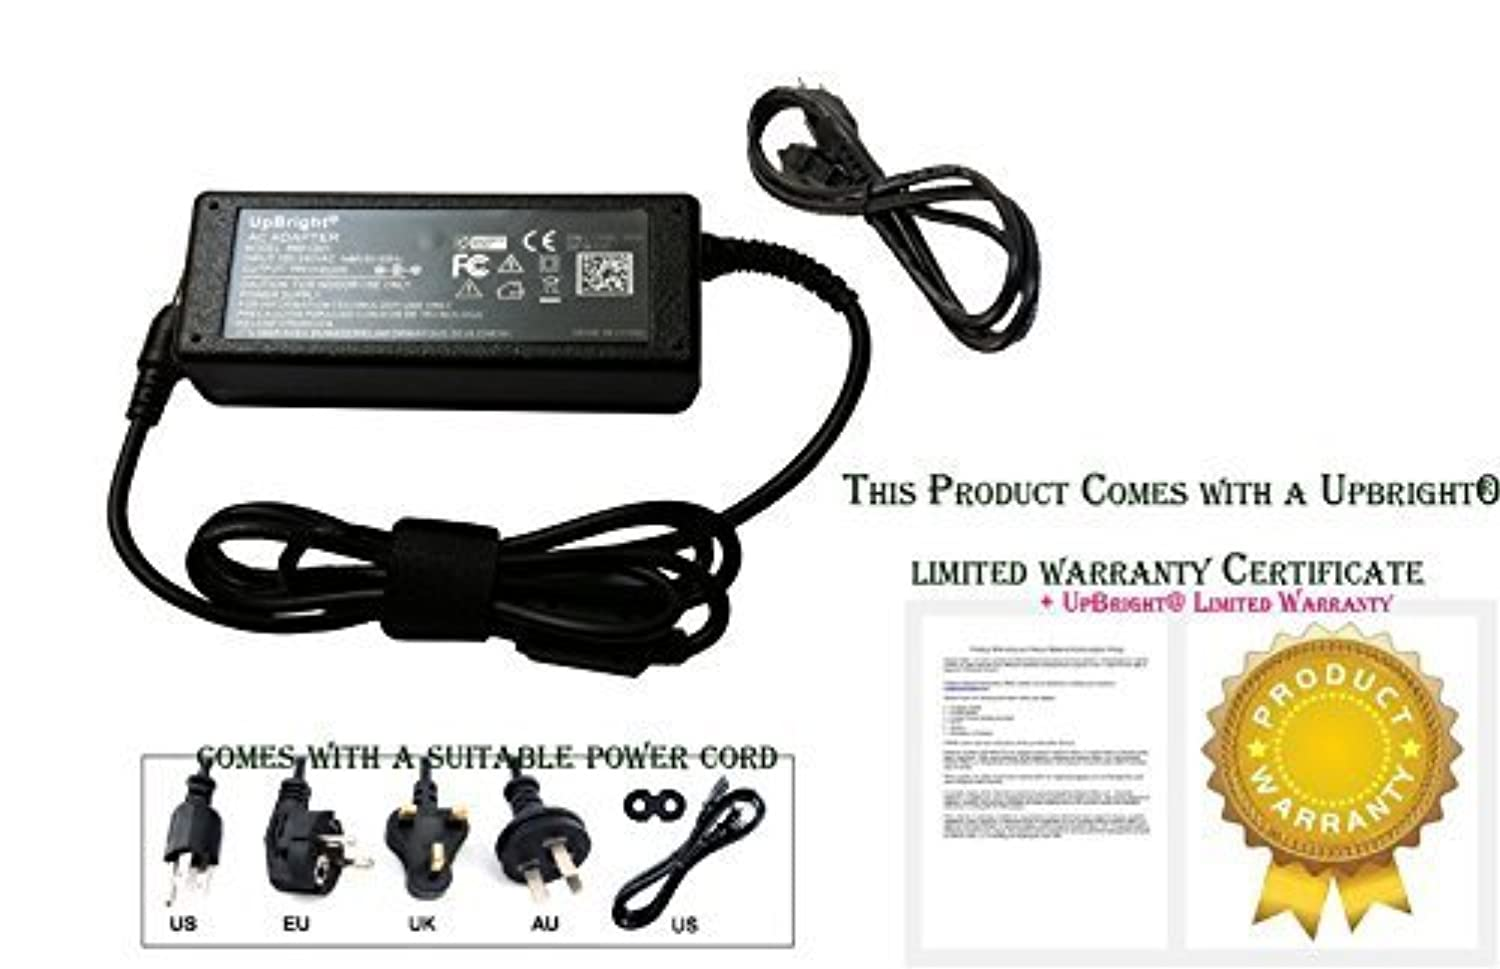 UpBright NEW Global AC / DC Adapter For HP TPC-DA561 TPCDA561 Laptop Notebook PC Switching Power Supply Power Supply Cord Cable PS Battery Charger Mains PSU